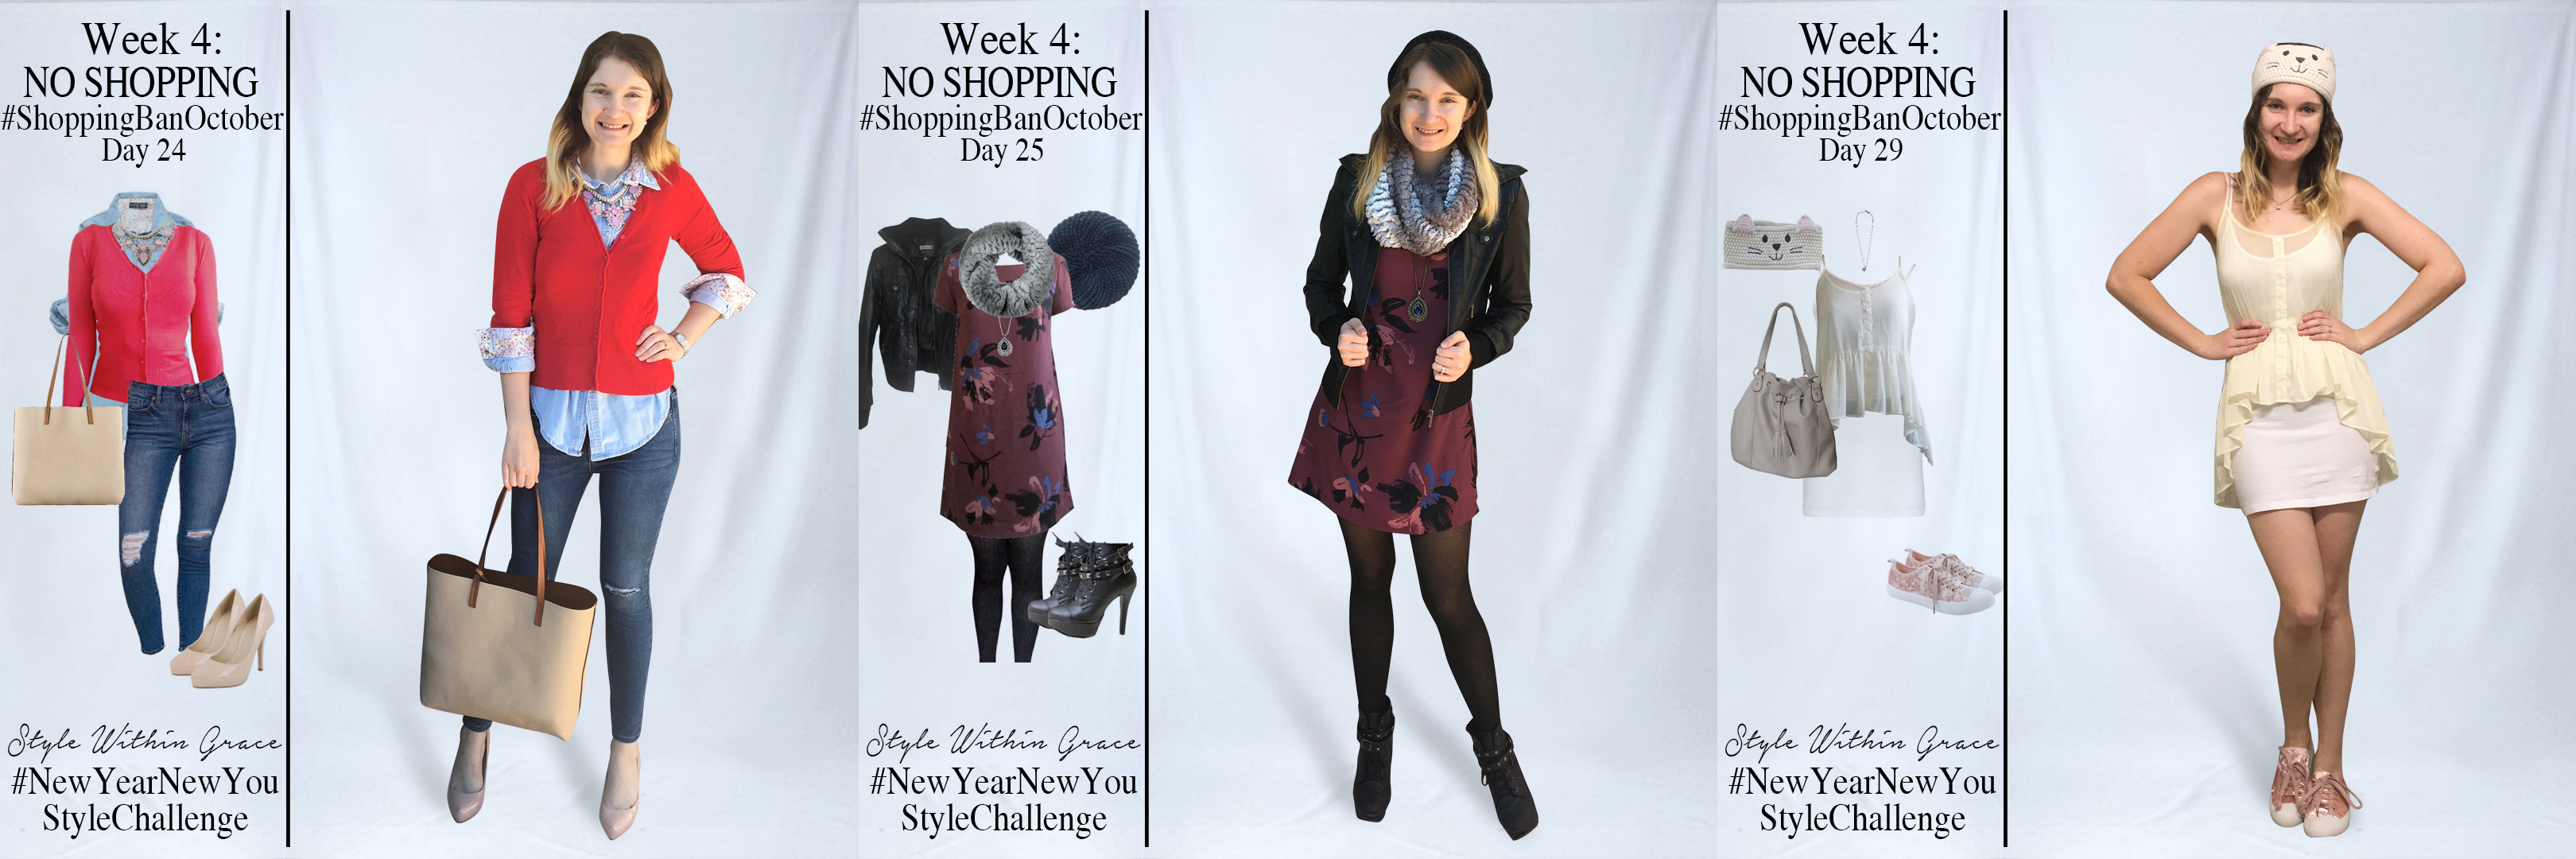 Shopping Ban October Outfit Ideas Week 4